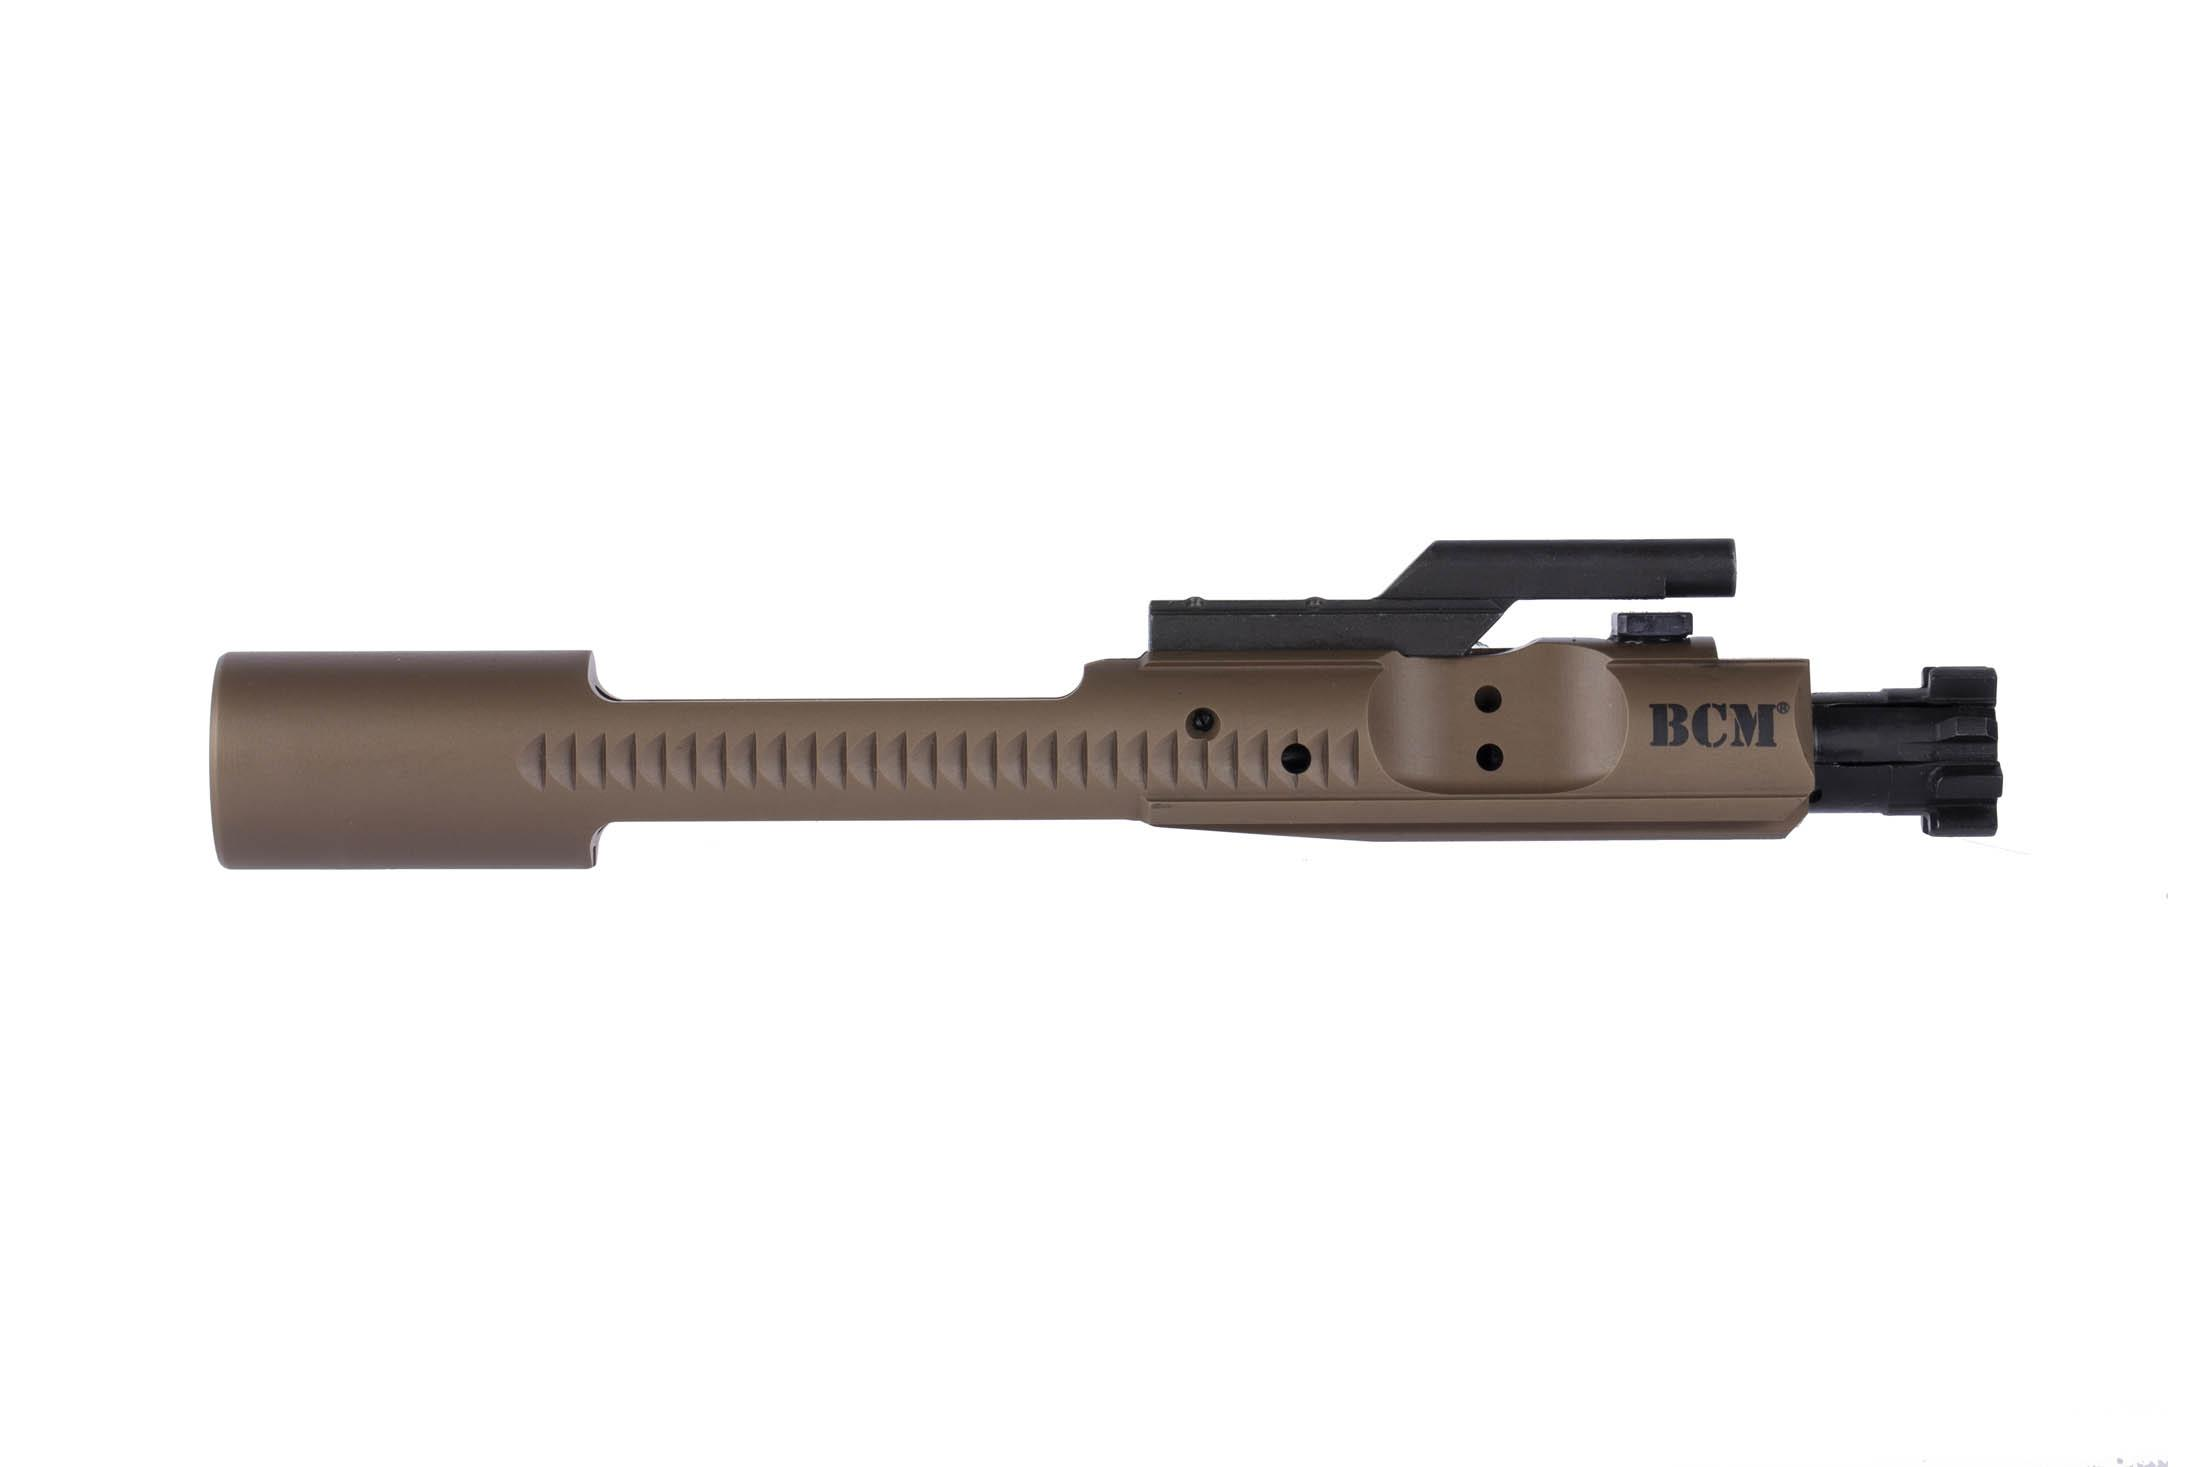 BCM AR-15 bolt carrier group for 5.56 NATO and 300 BLK uses an FDE full mass M16 style carrier with forward assist serrations